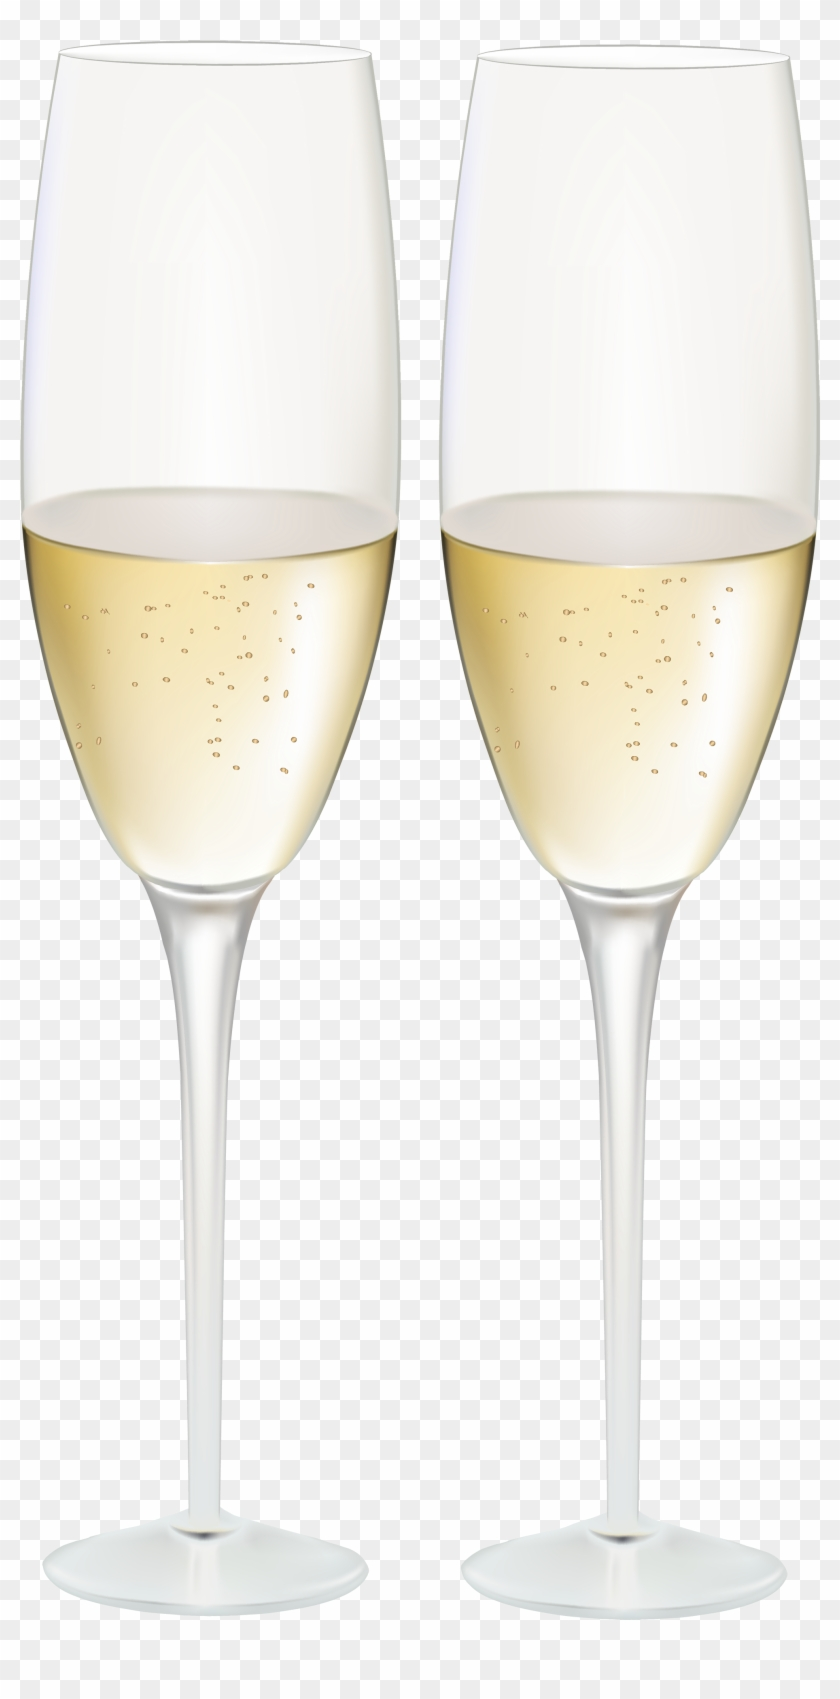 medium resolution of champagne glasses png clipart champagne glasses png 206994